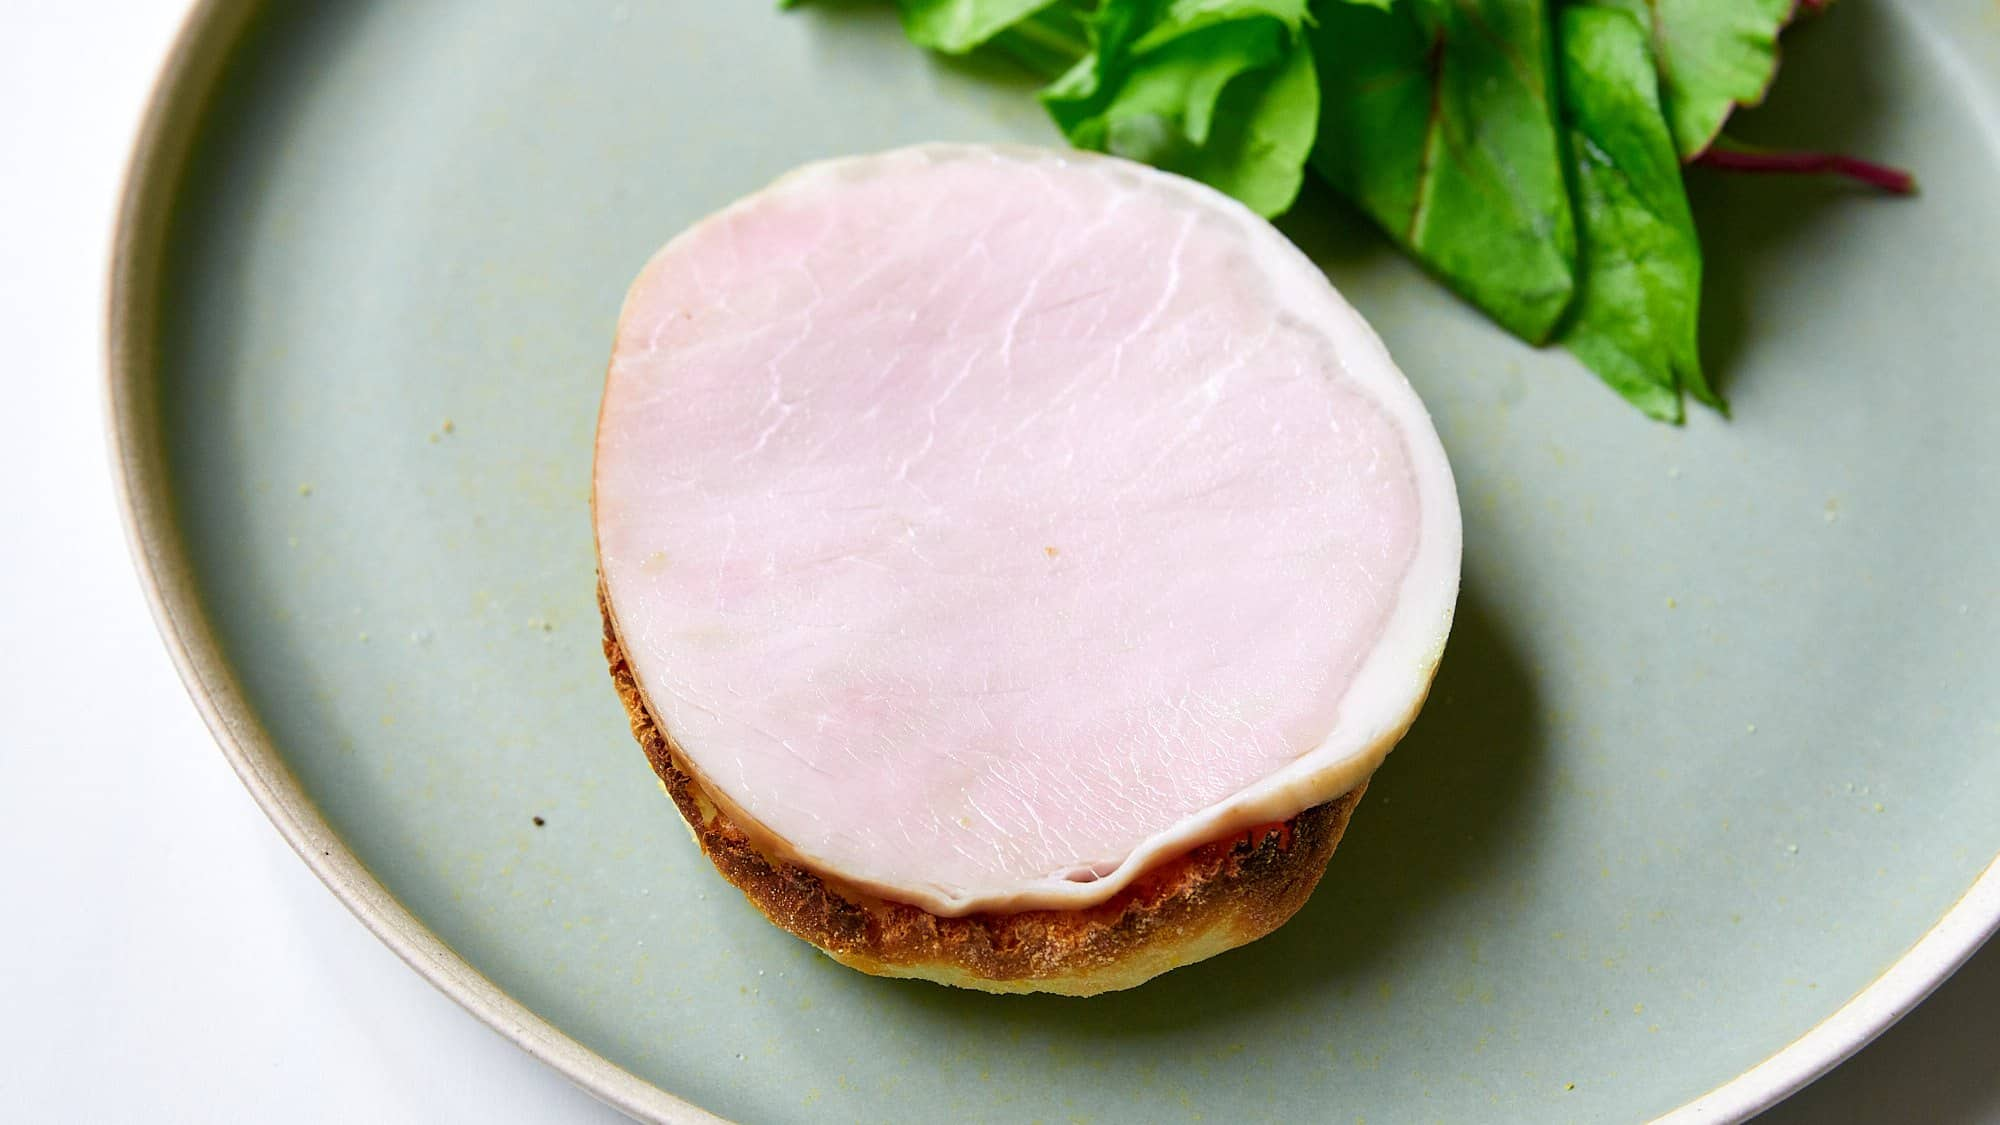 The next component of Eggs Benedict is a thick-cut slice of ham.